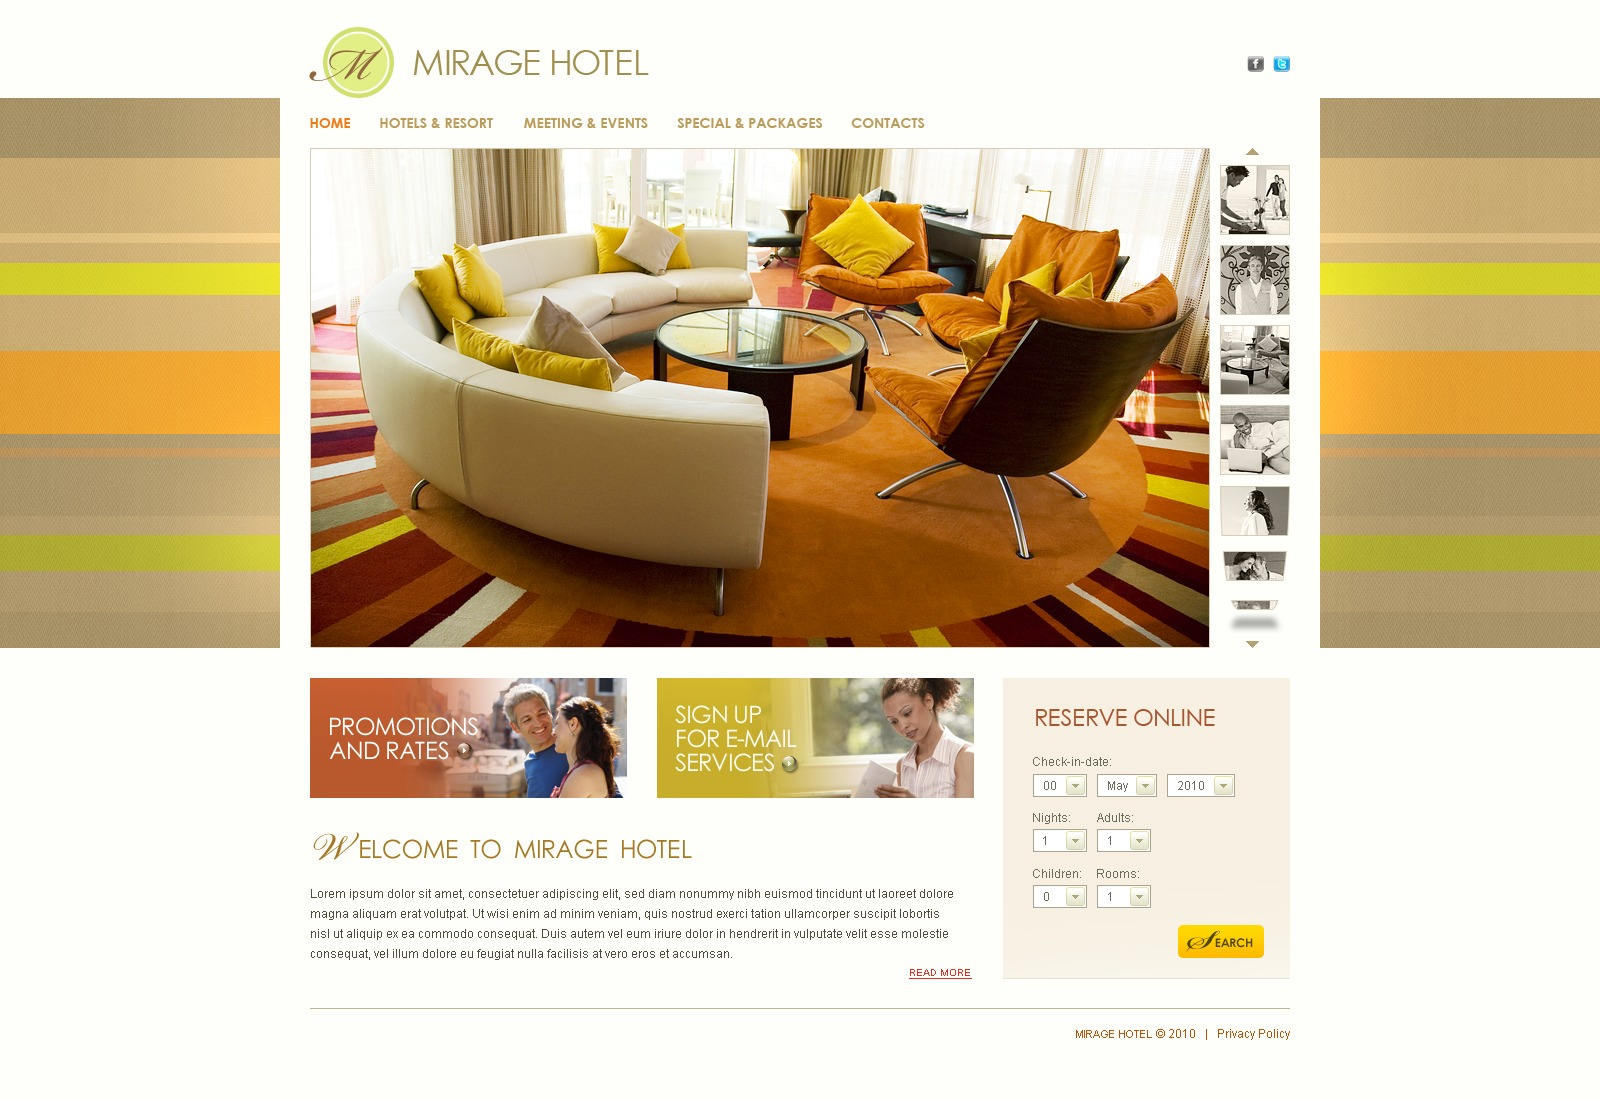 The Hotel Royal Motel PSD Design 54181, one of the best PSD templates of its kind (hotels, most popular, flash 8, wide), also known as hotel royal motel PSD template, PSD template PSD template, exotic PSD template, building PSD template, events PSD template, interior PSD template, cozy PSD template, comfortable room PSD template, spacious PSD template, light PSD template, modern rest PSD template, pool PSD template, floor PSD template, stairs PSD template, staff PSD template, reception PSD template, testimonial PSD template, service PSD template, offer PSD template, booking PSD template, reservation PSD template, order PSD template, location PSD template, security PSD template, wedding PSD template, cerem and related with hotel royal motel, PSD template, exotic, building, events, interior, cozy, comfortable room, spacious, light, modern rest, pool, floor, stairs, staff, reception, testimonial, service, offer, booking, reservation, order, location, security, wedding, cerem, etc.